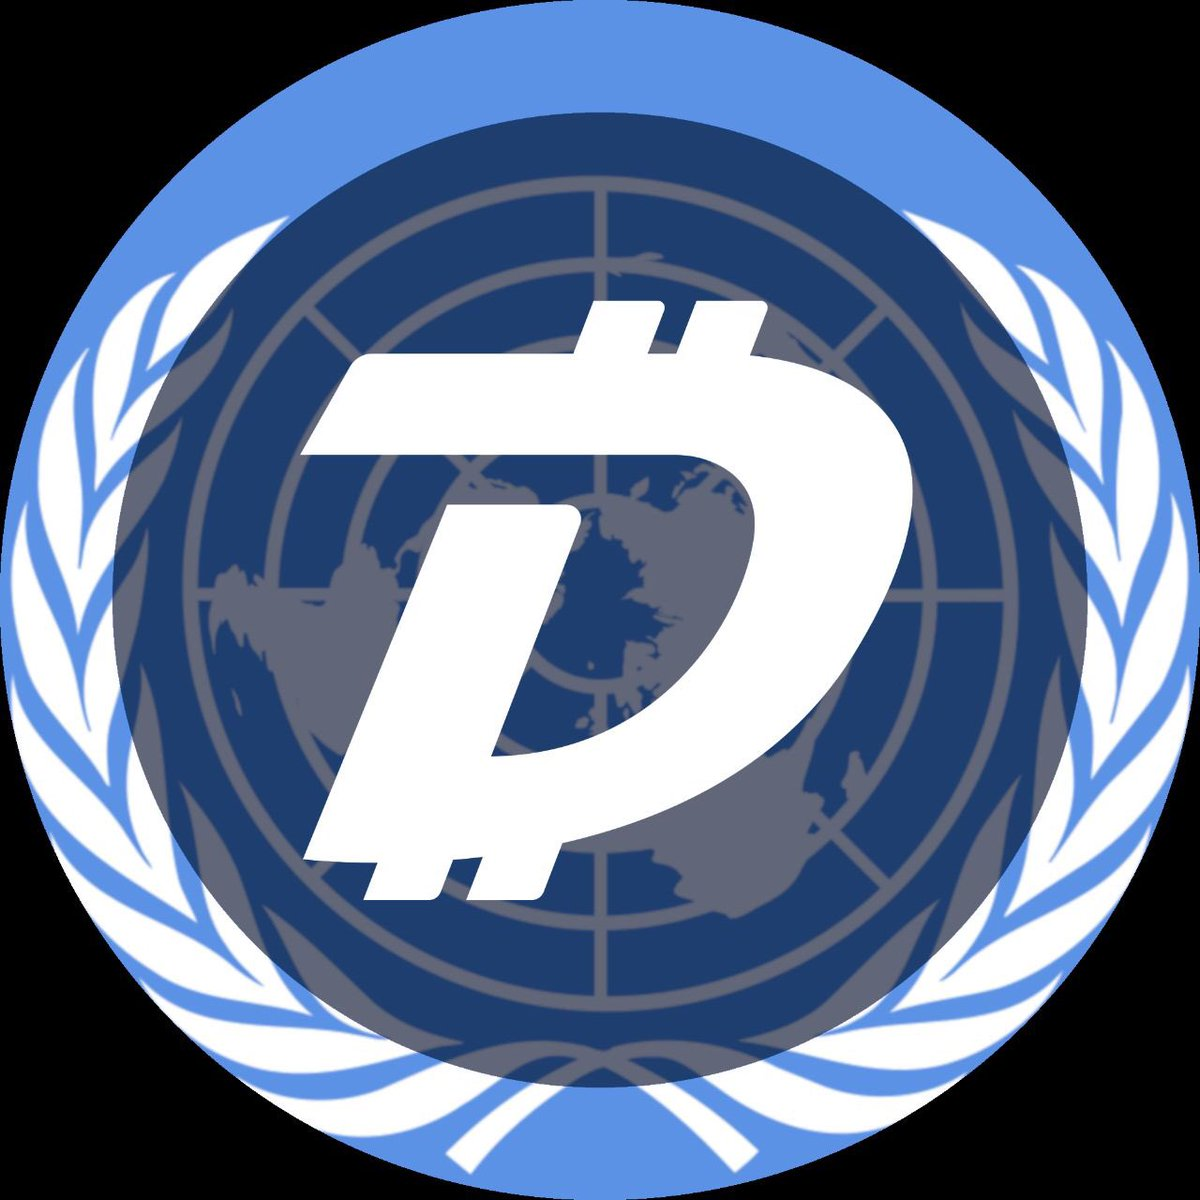 Everything the #DGBAT does behind the scenes, is all voluntary. Dedicated members of the community united, and have achieved more in the past 5 months than any other coin in the Crypto space.  Power in numbers.. Remember the many can and will beat the powerful few. #DigiByte <br>http://pic.twitter.com/0sfX4vBqgu